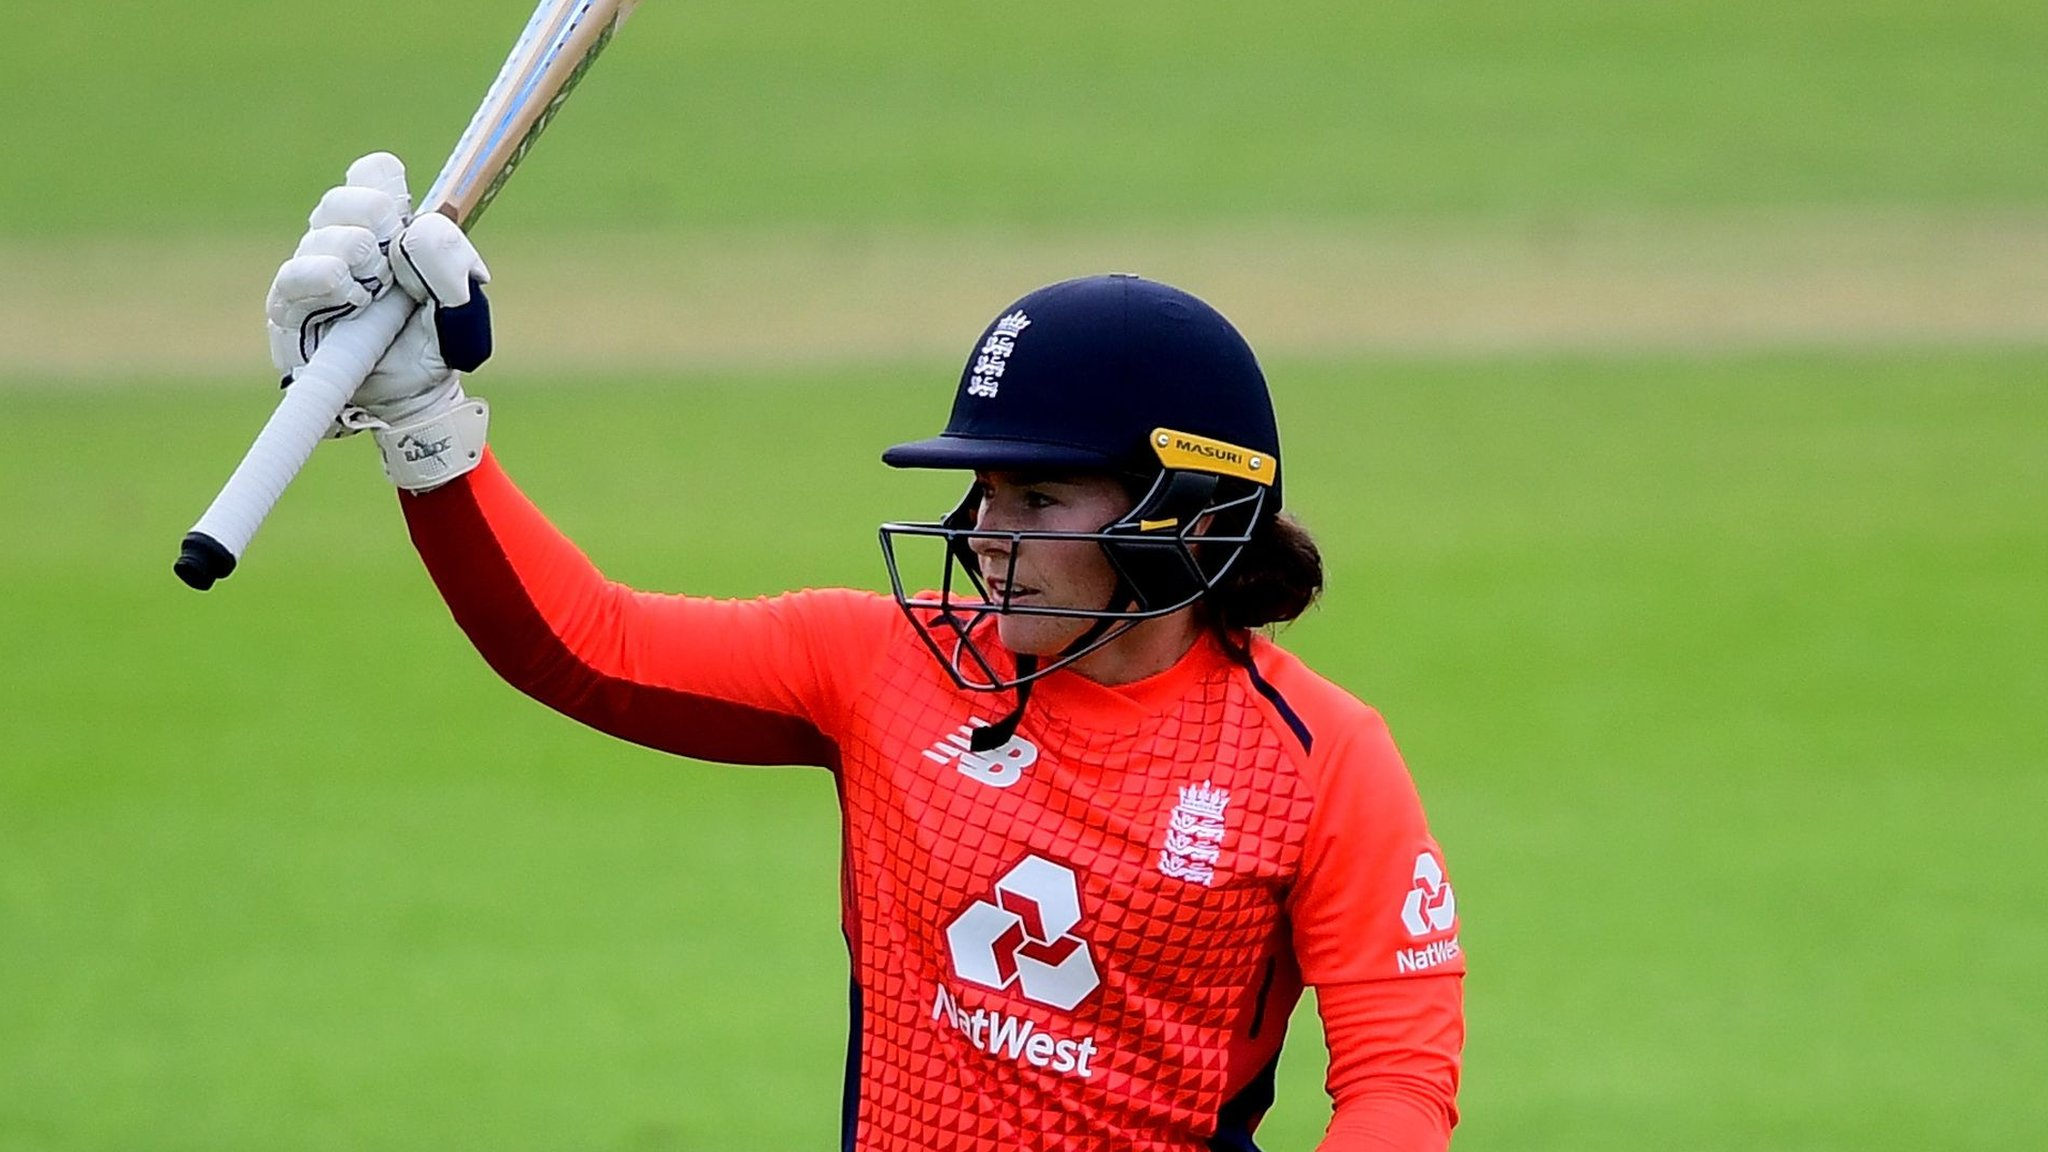 England women make highest T20 total - hours after New Zealand set record